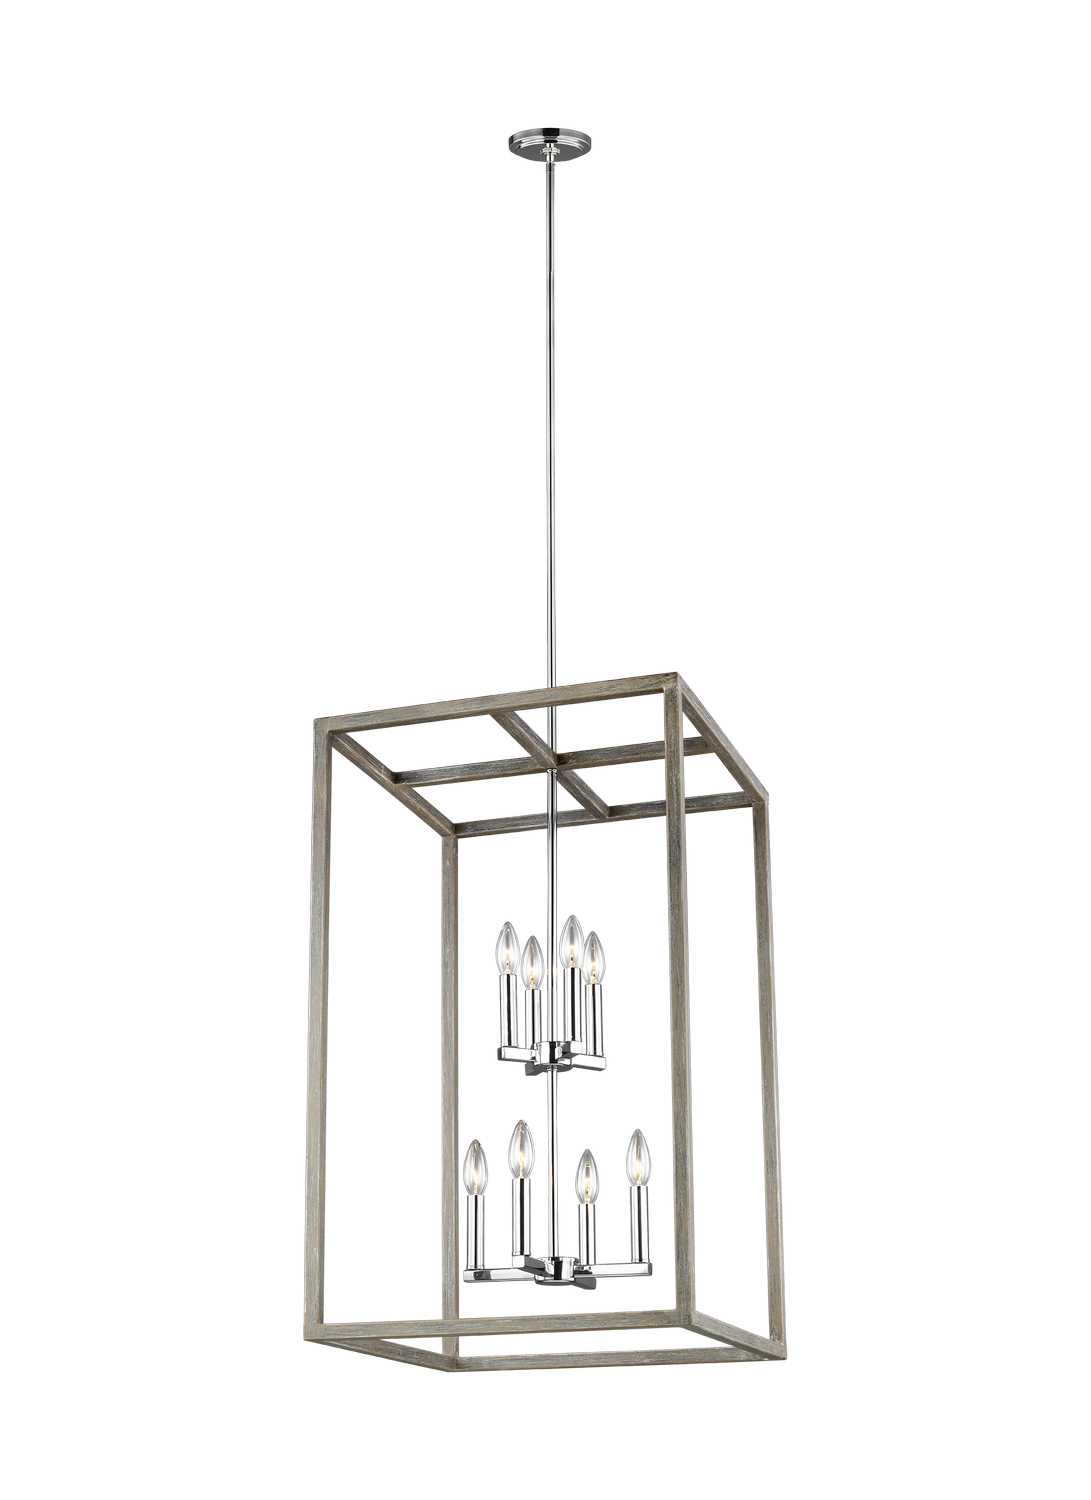 Eight Light Foyer Pendant from the Moffet Street collection by Seagull 5134508 872